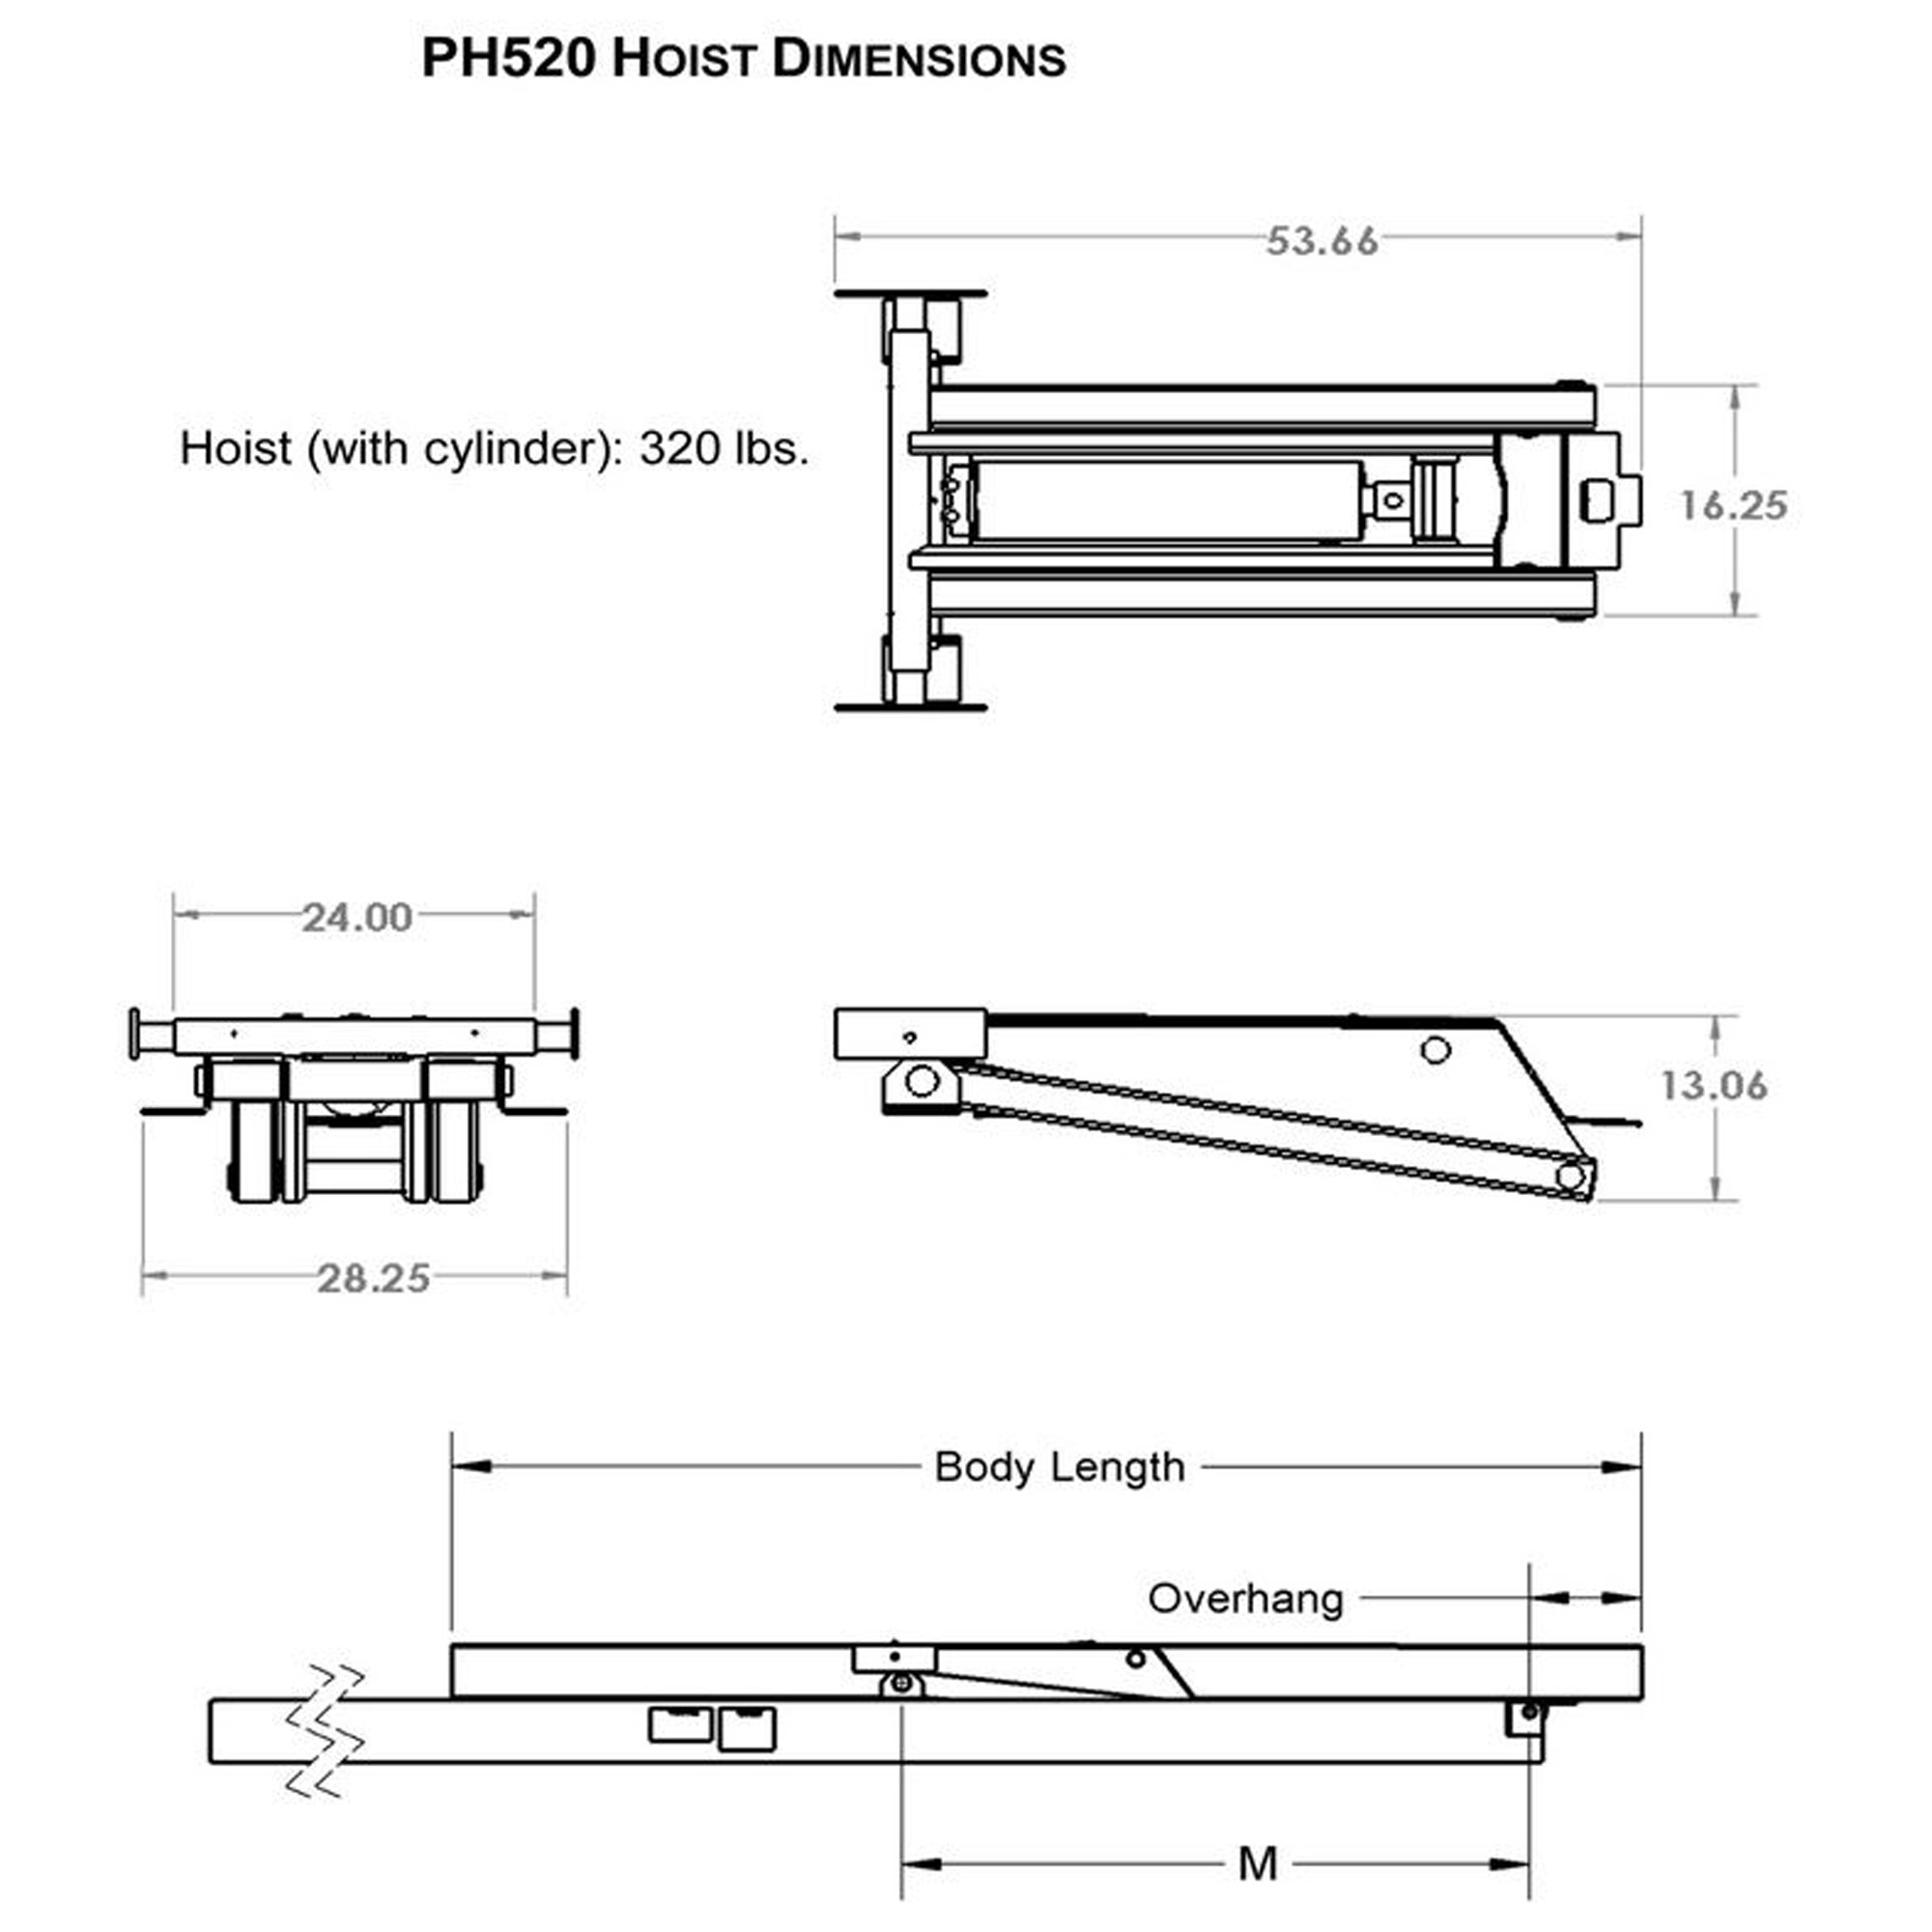 Dump Truck Bed Schematic Wire Center Soldering Prototype Copper Pcb Printed Circuit Board 50x70mm 2 Ebay 10 Ton 20 000 Lb Trailer Hydraulic Scissor Hoist Kit Ph520 Rh Johnsontrailerparts Com Parts Specifications